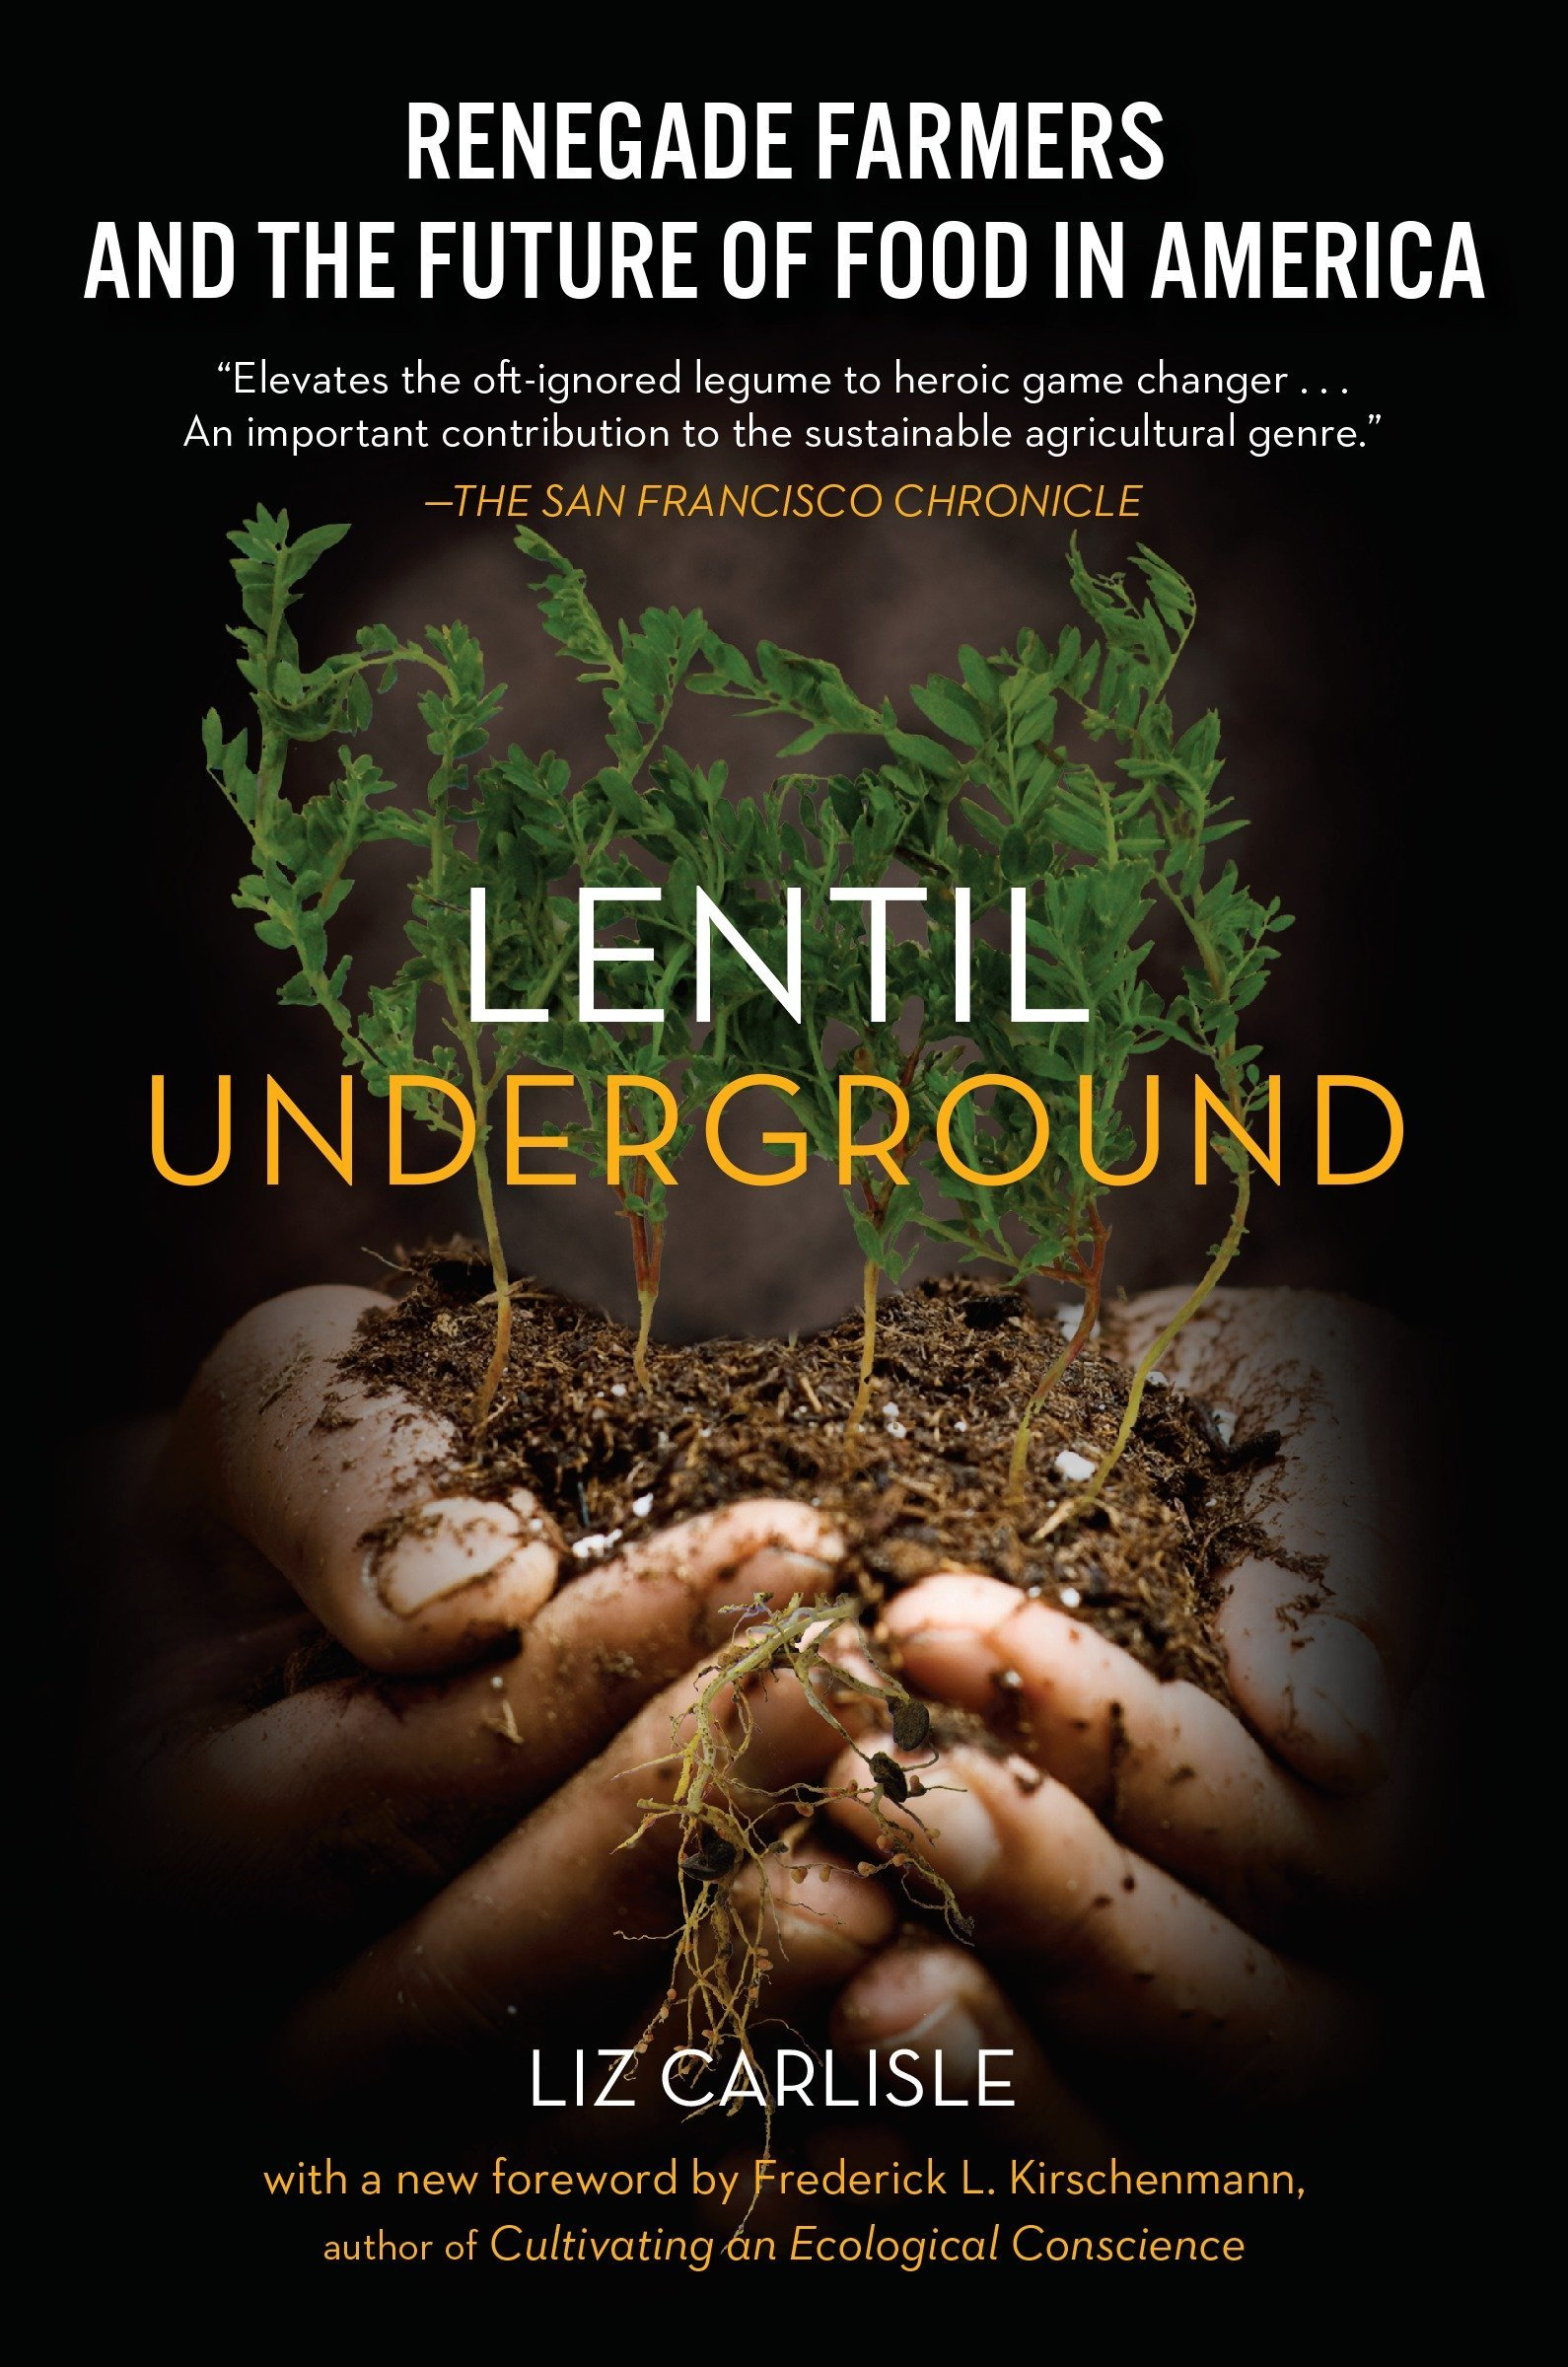 Lentil Underground: Renegade Farmers and the Future of Food